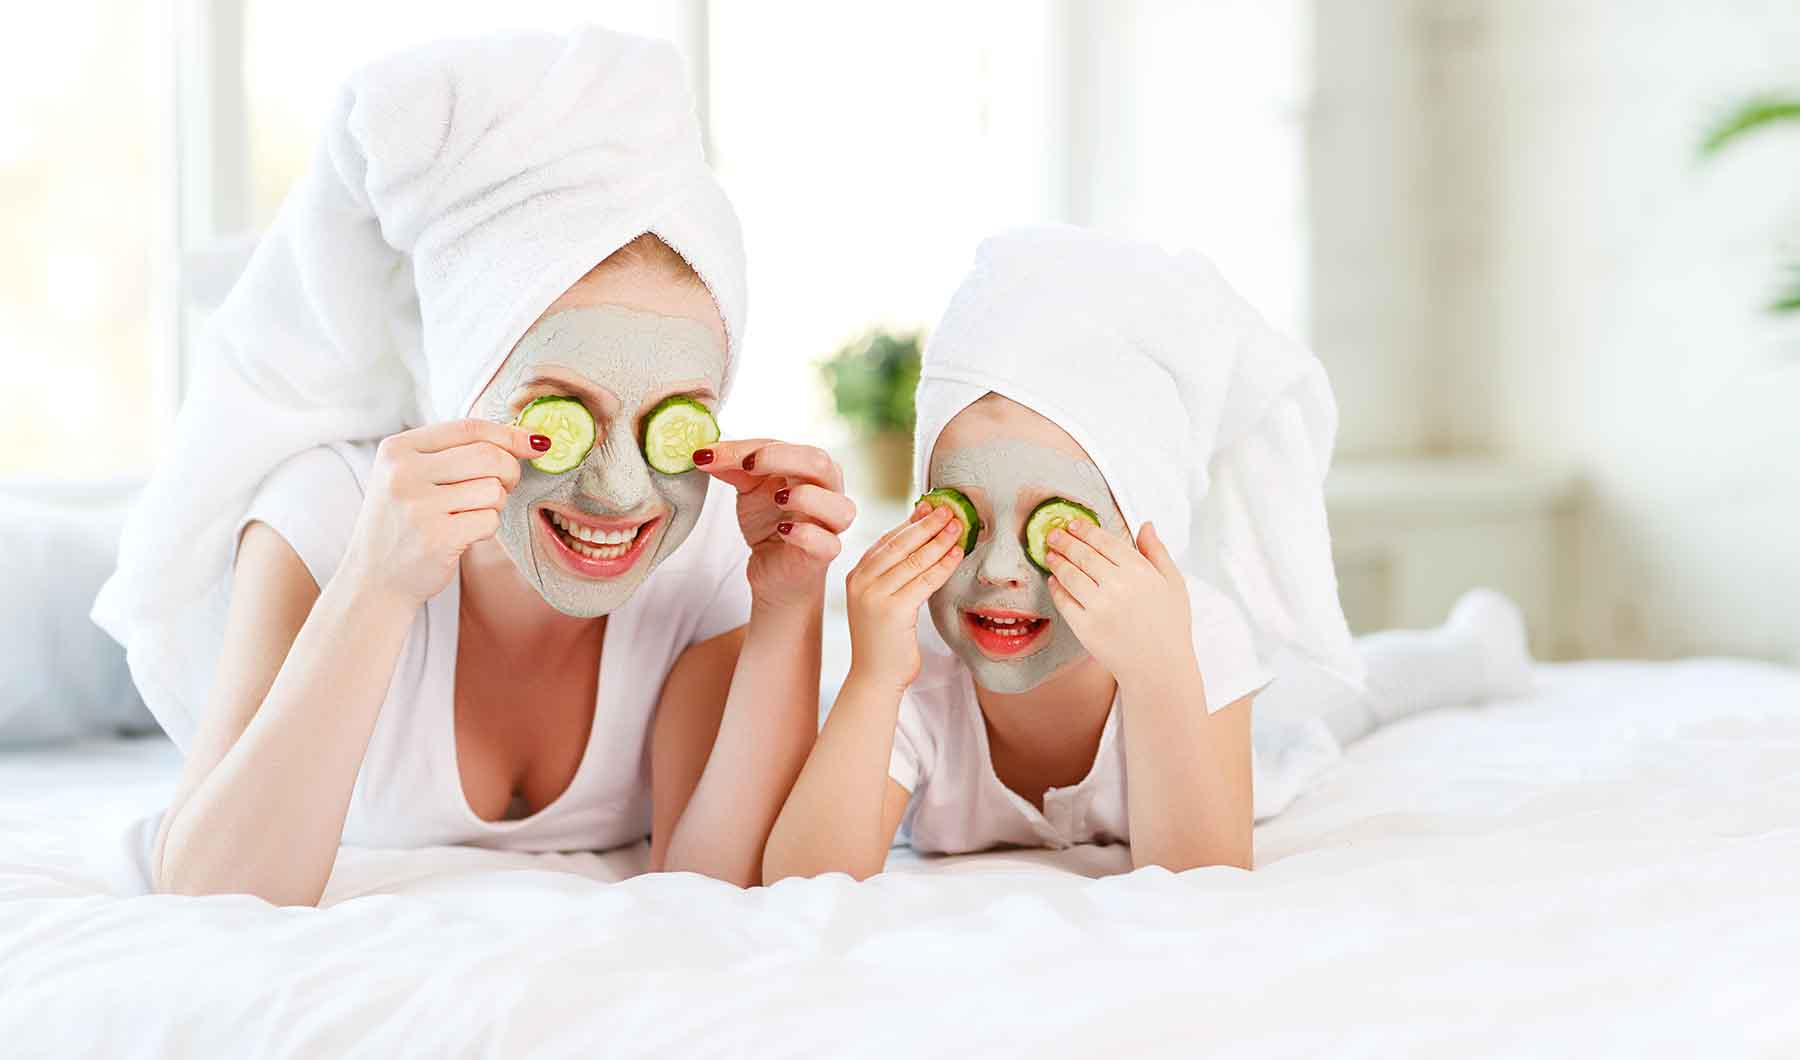 Mom and daughter at the spa